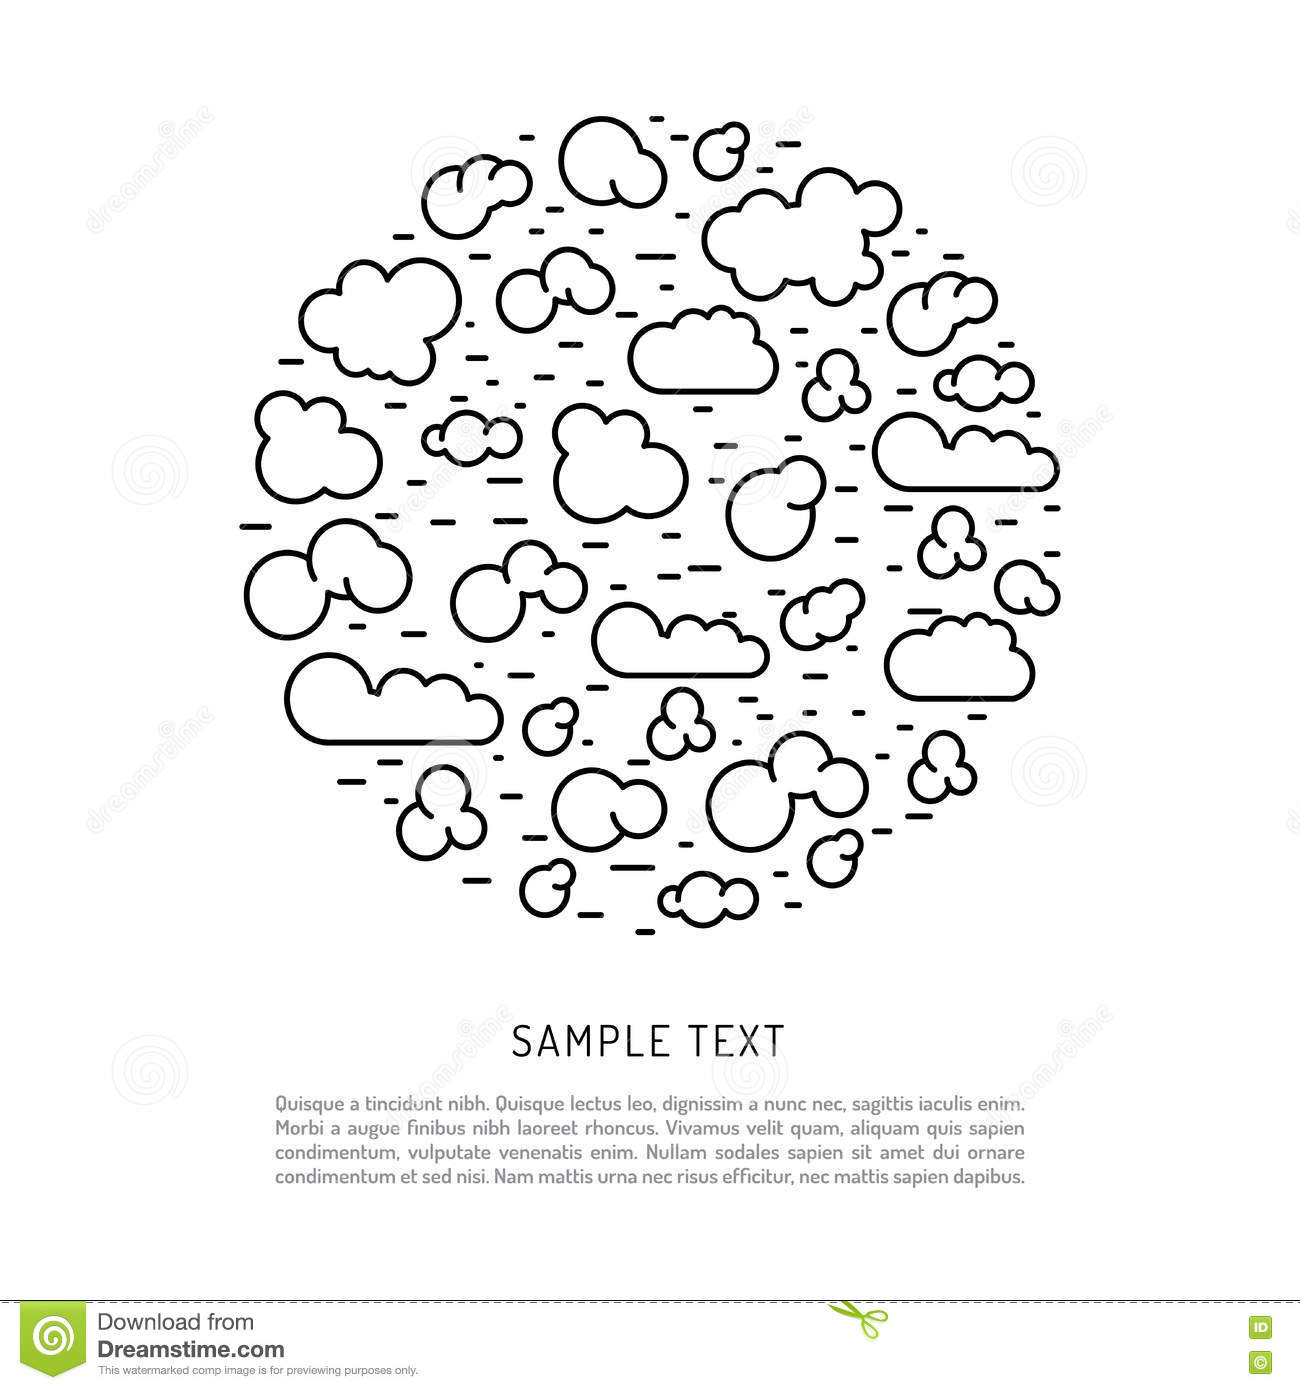 types of clouds the atmosphere cartoon vector